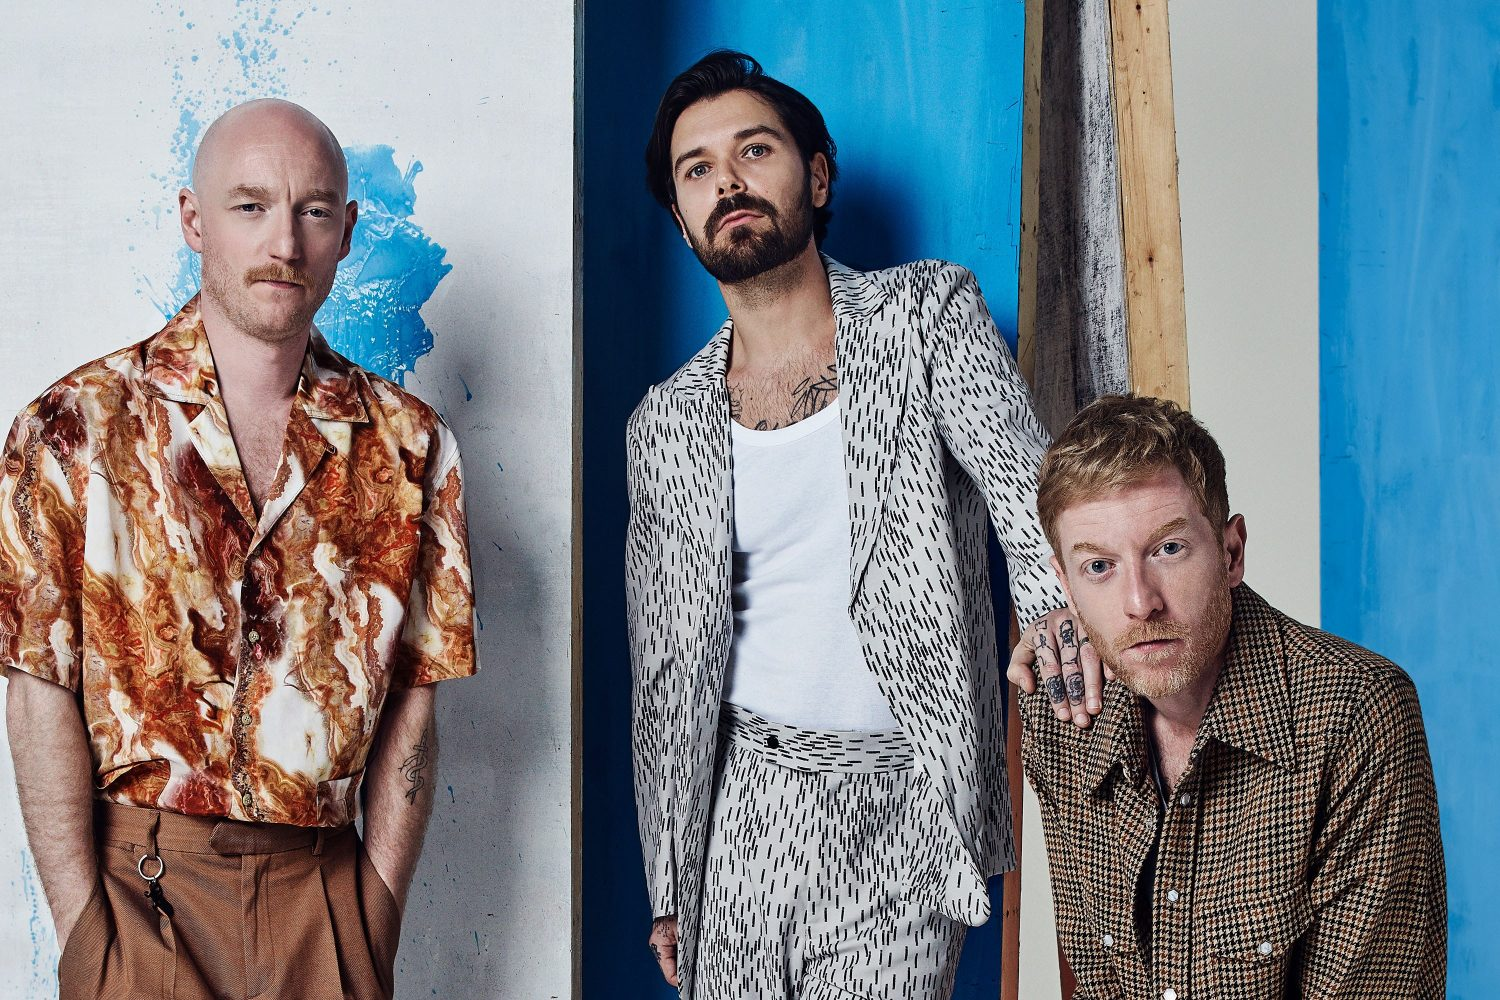 Biffy Clyro have returned with their new single, 'Instant History'